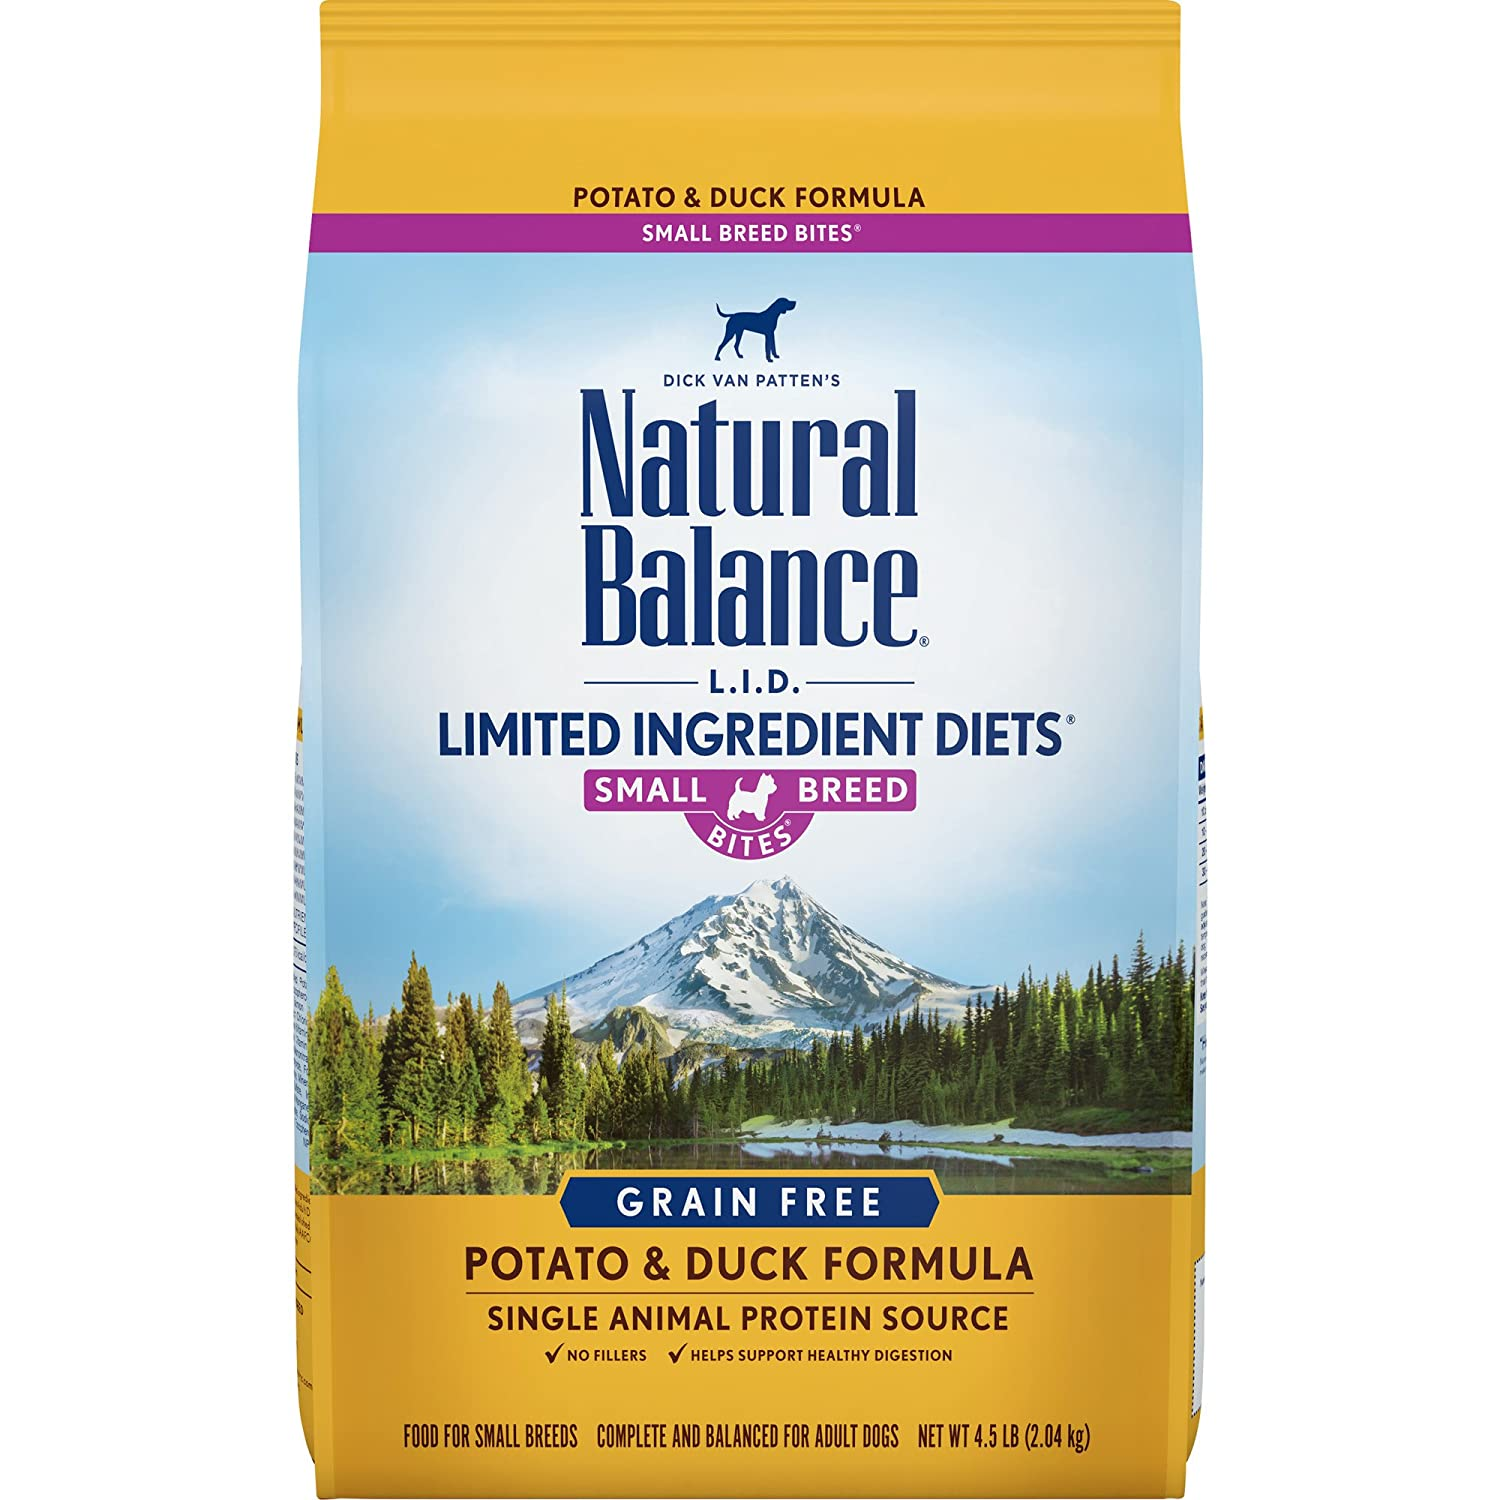 N A Natural Balance Small Breed Bites L.I.D. Limited Ingredient Diets Dry Dog Food, Grain Free, Potato & Duck Formula, 4.5-Pound